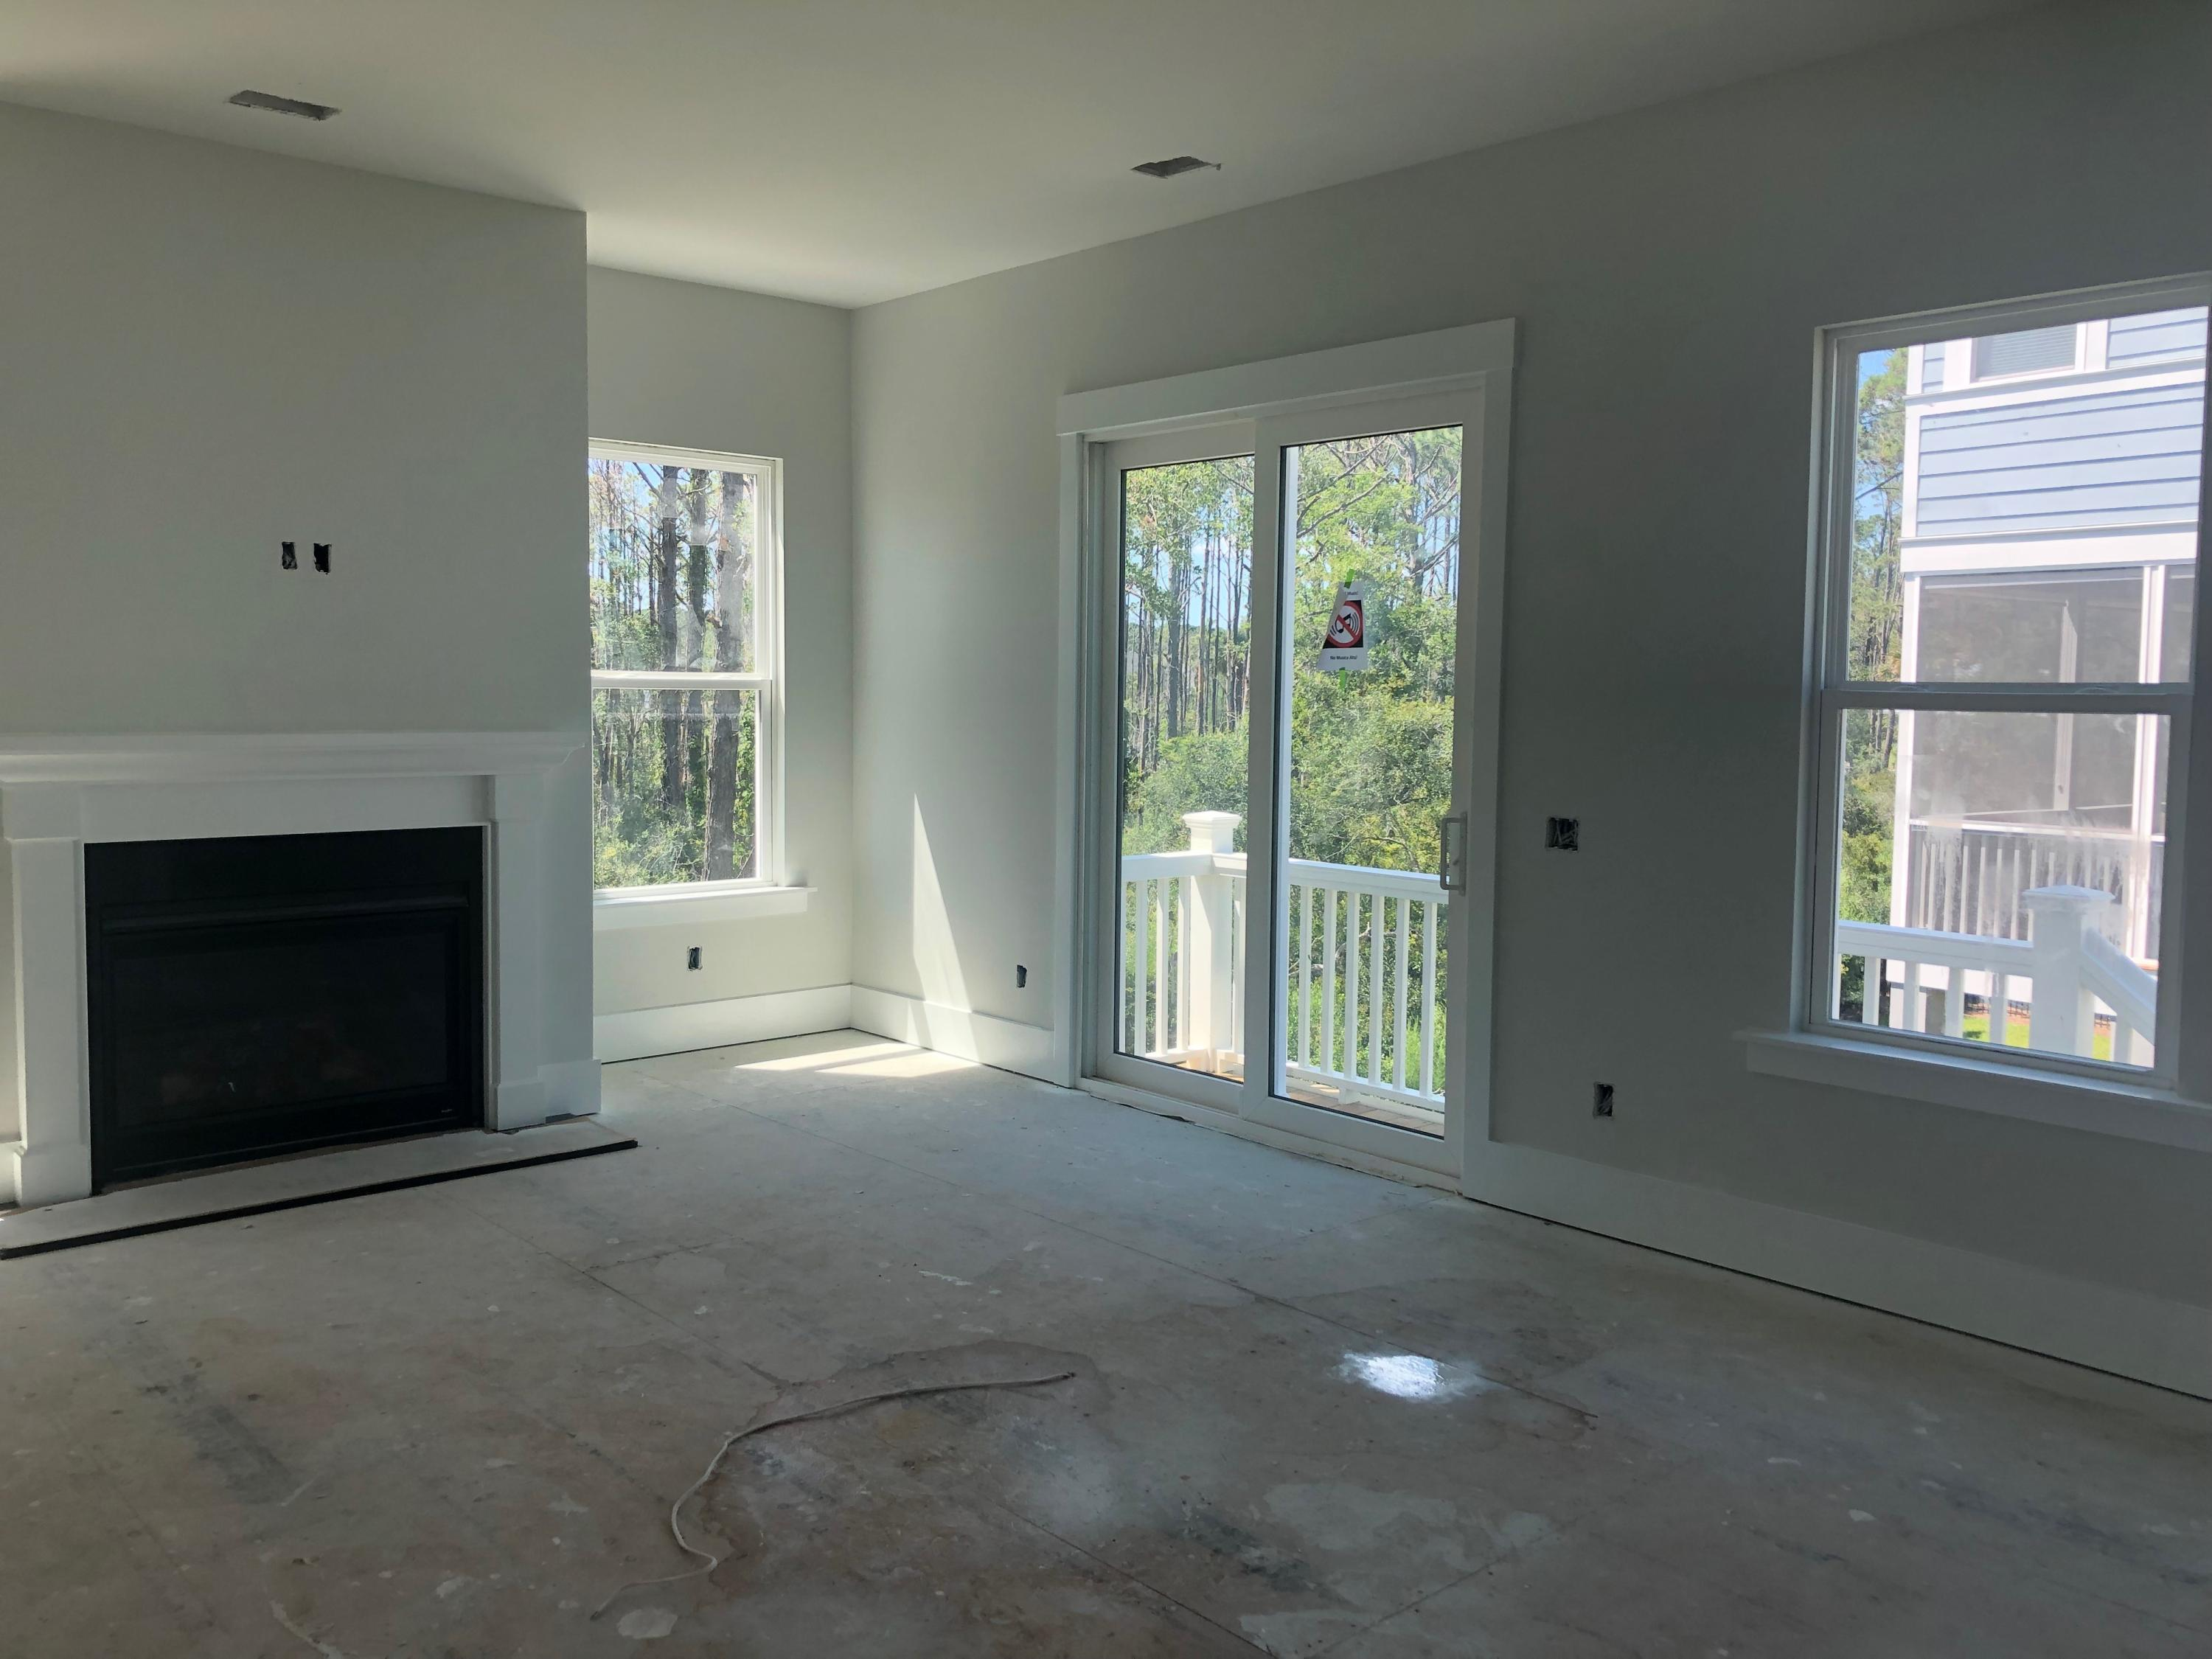 Stratton by the Sound Homes For Sale - 1419 Stratton Place, Mount Pleasant, SC - 6